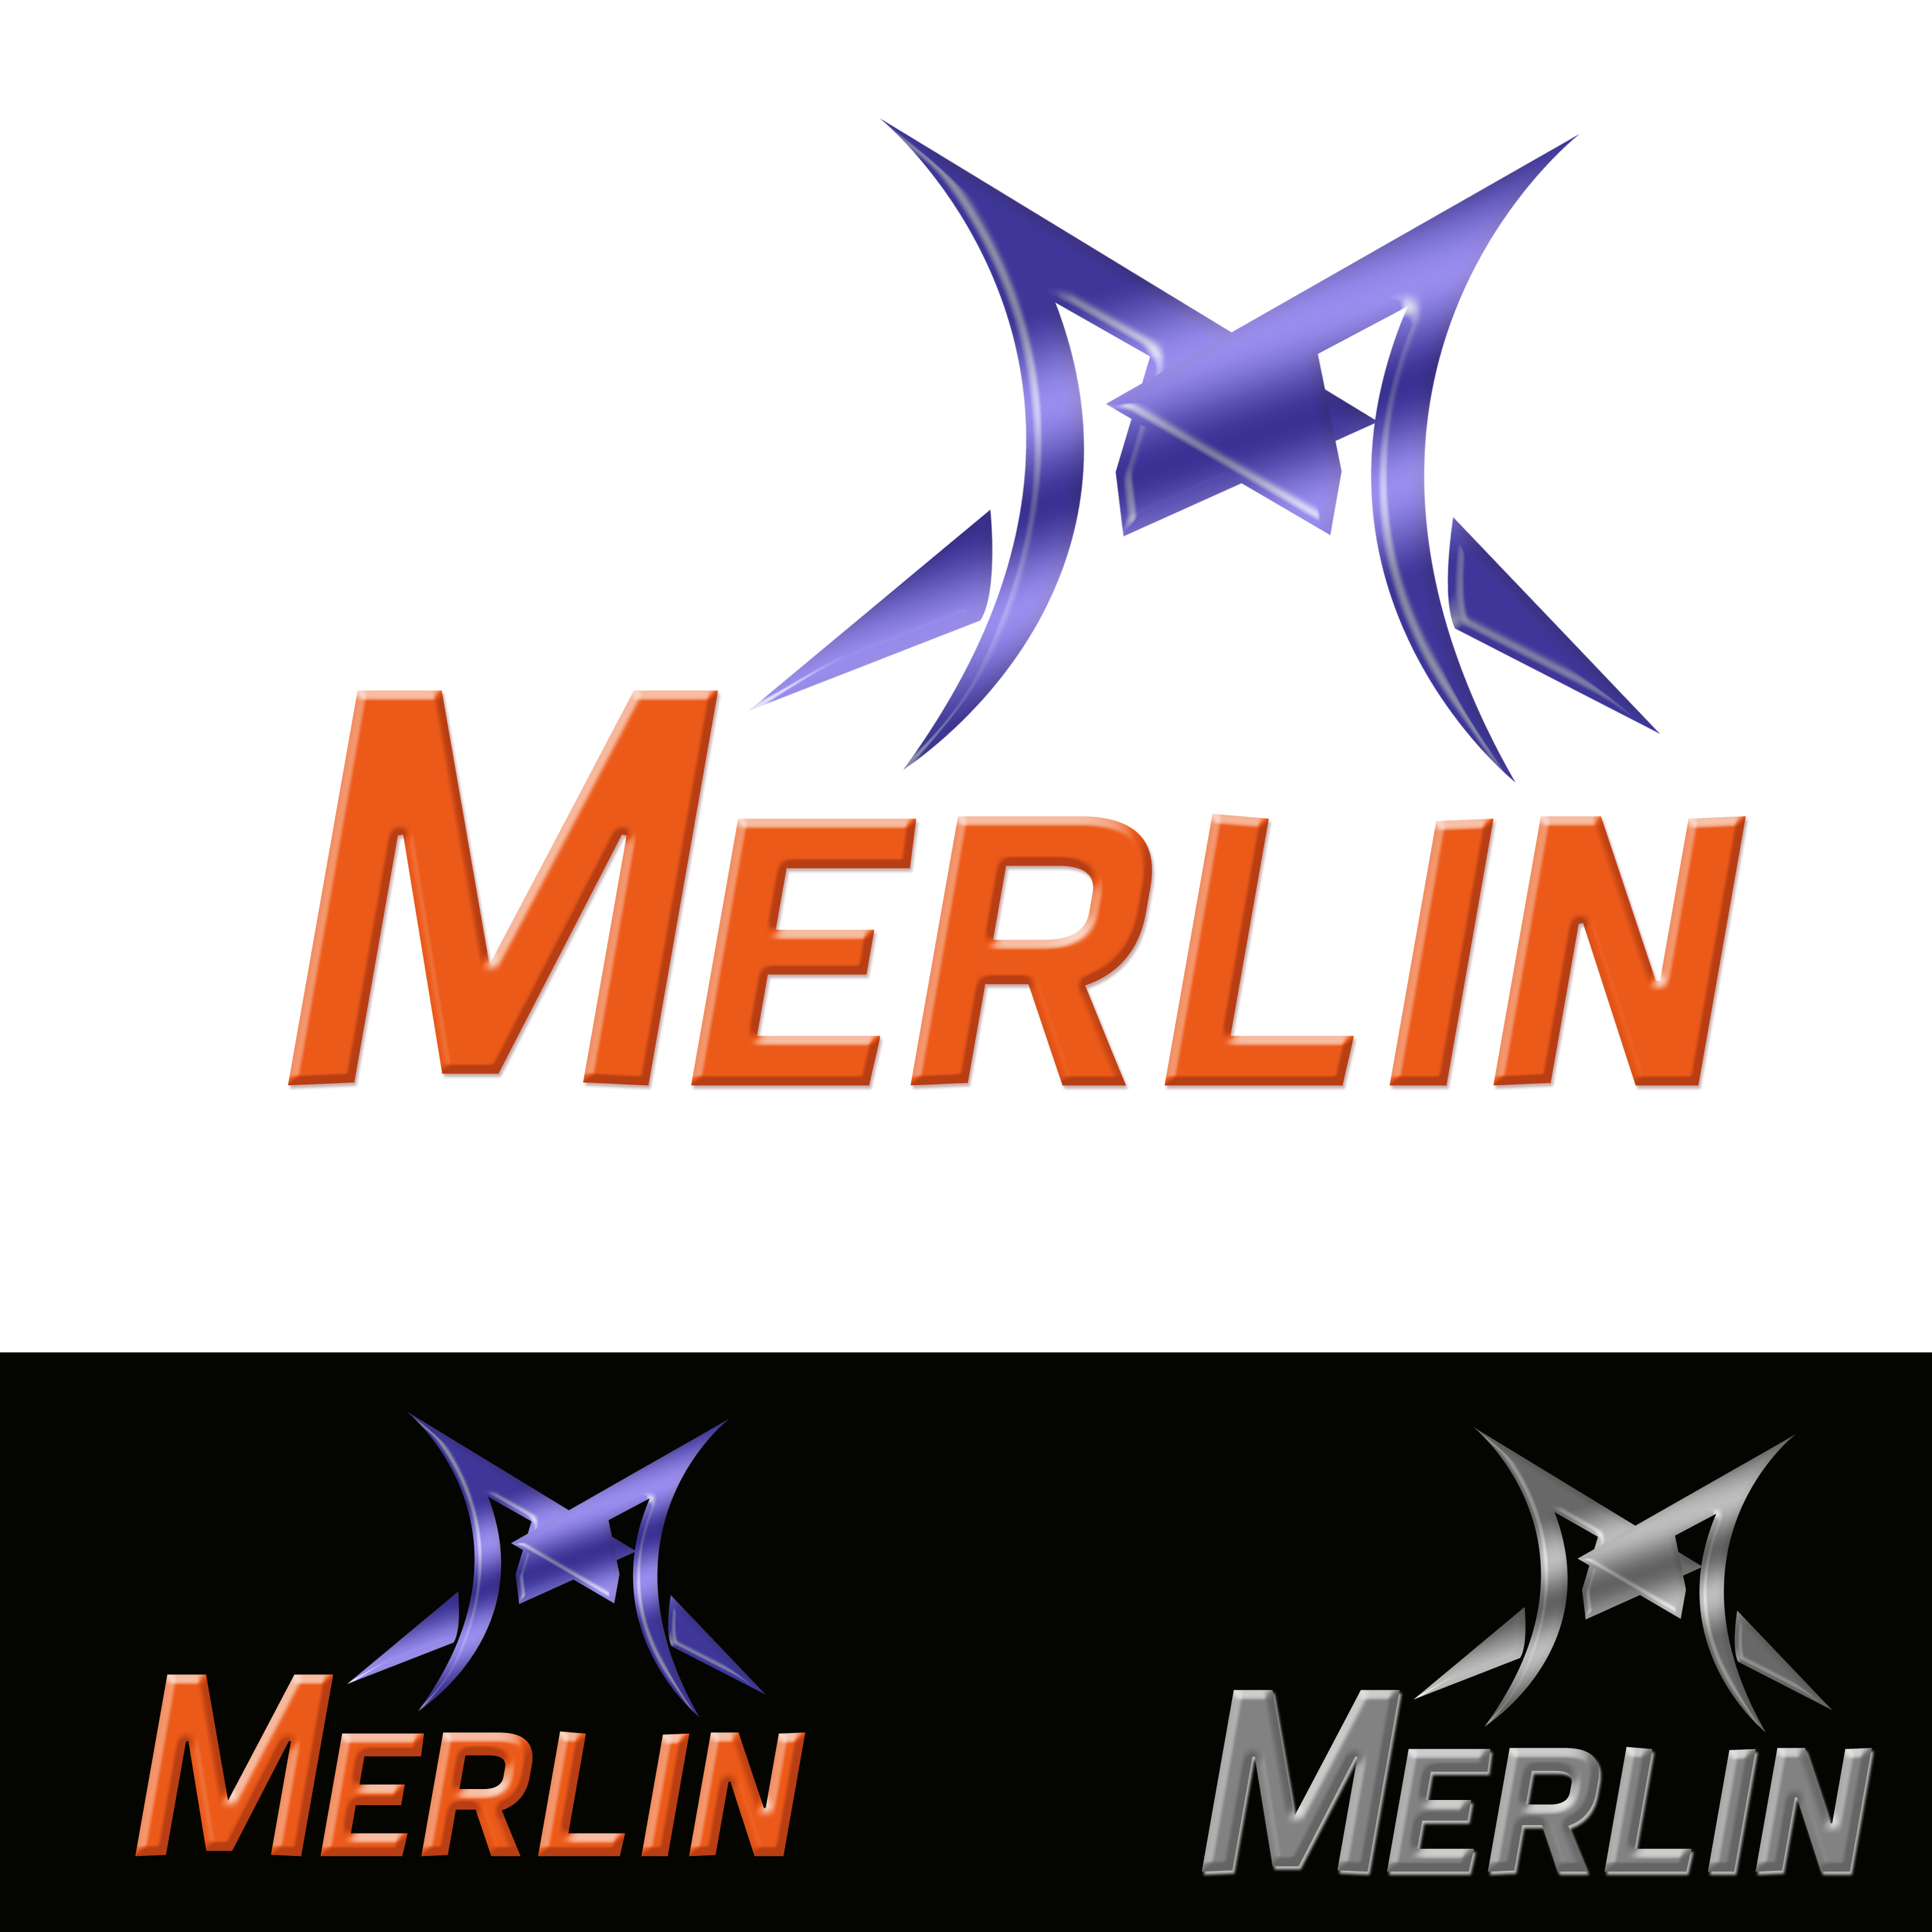 Logo Design by Roberto Sibbaluca - Entry No. 8 in the Logo Design Contest Imaginative Logo Design for Merlin.